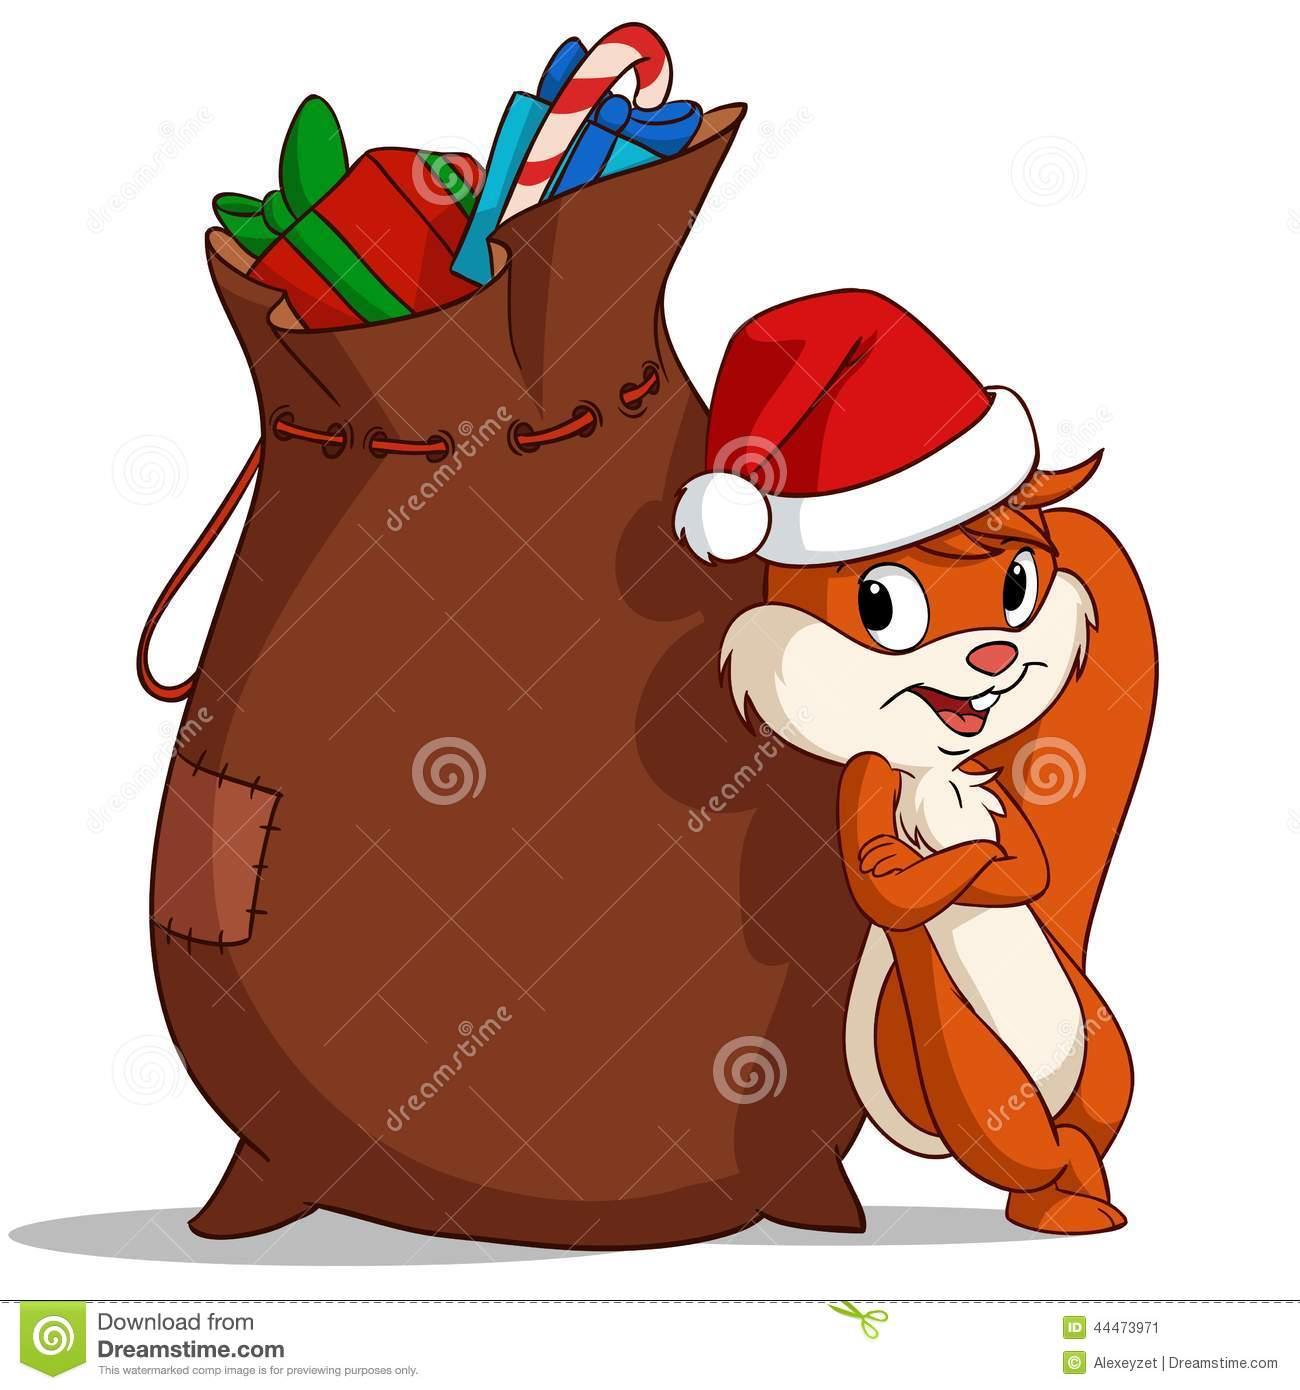 Cartoon Christmas Squirrel With Bag Of Gift Stock Vector - Image ...: www.dreamstime.com/stock-illustration-cartoon-christmas-squirrel...